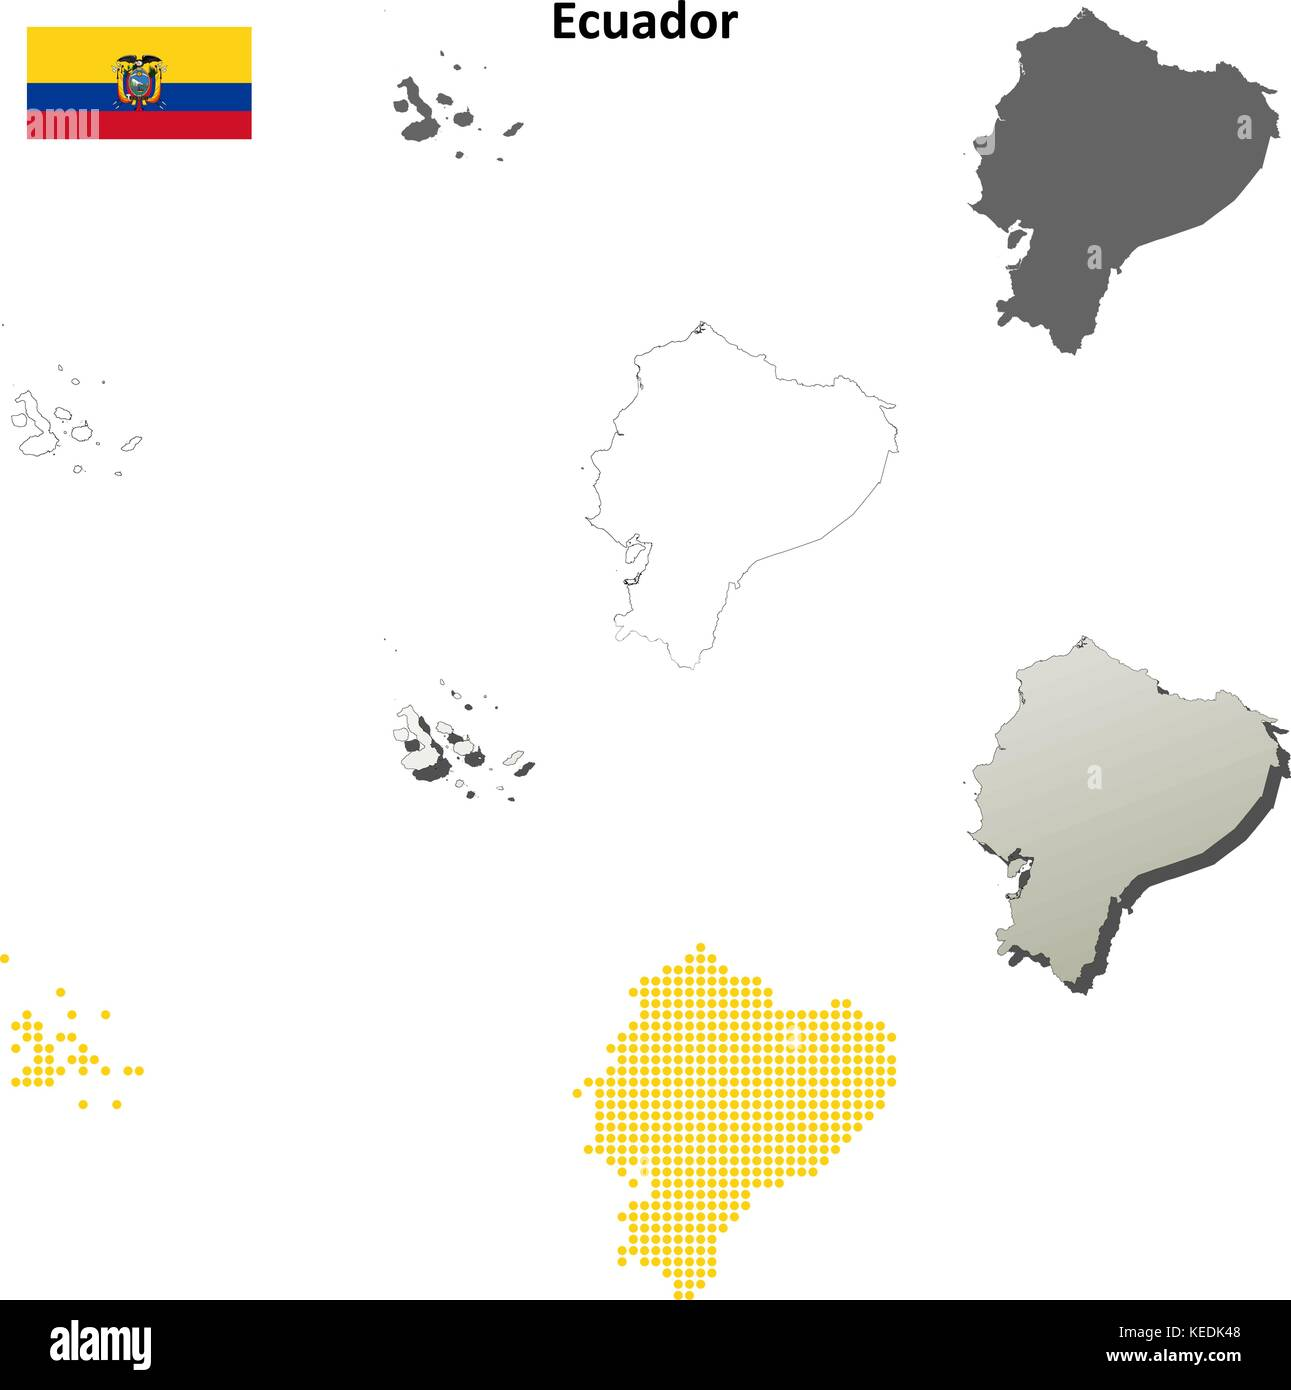 Ecuador Map Stock Photos Ecuador Map Stock Images Alamy - Colored outline map of ecuador